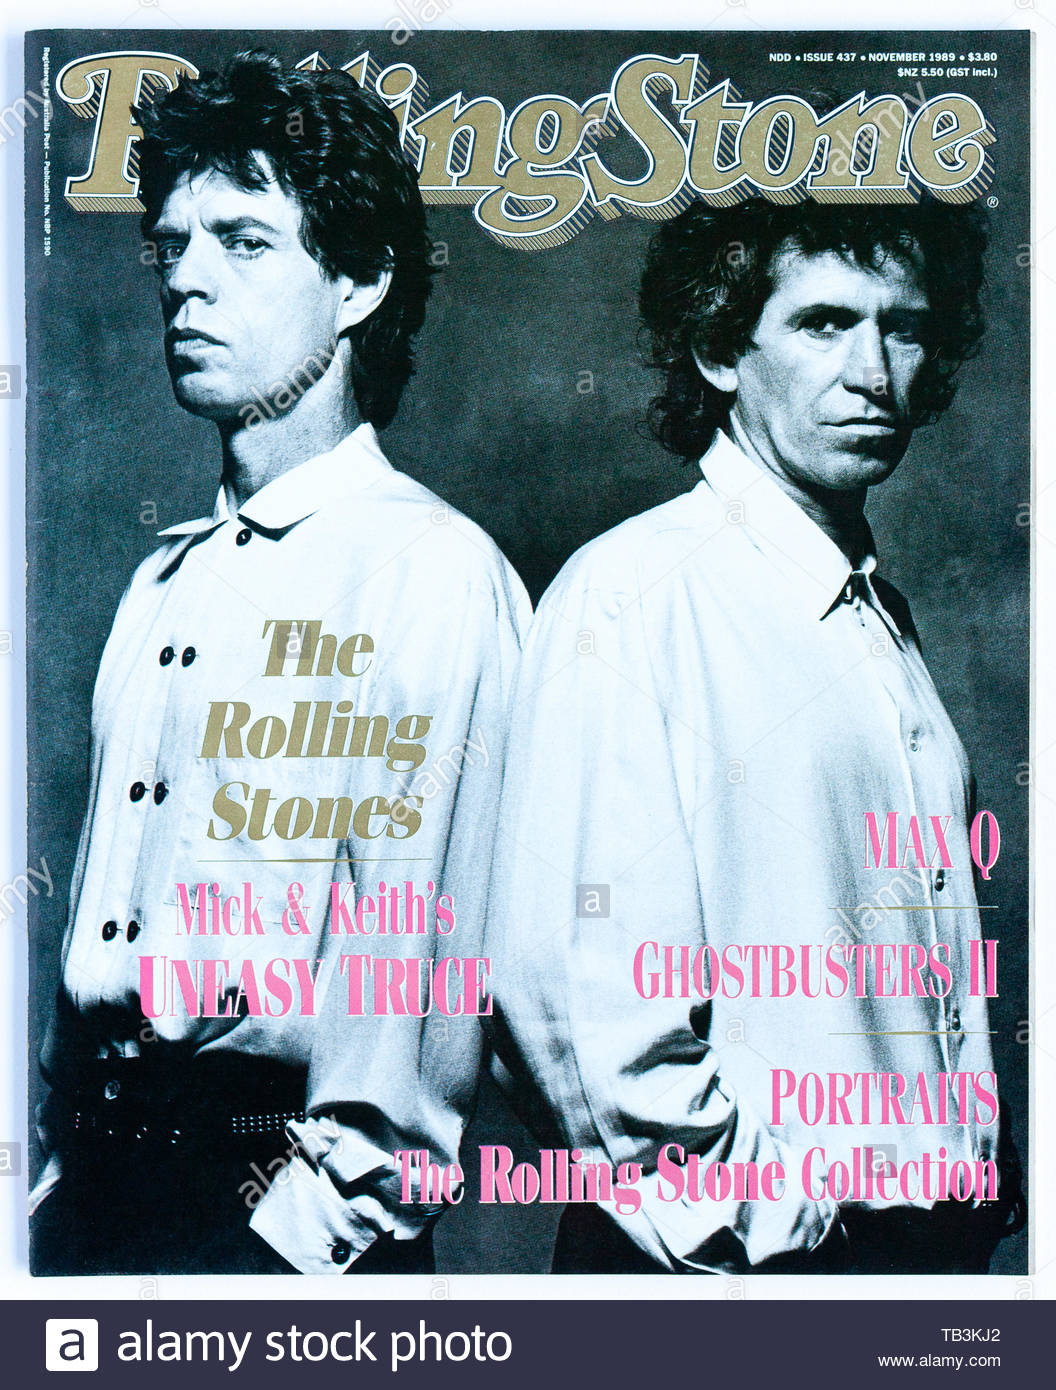 The cover of Rolling Stone magazine, issue 437, featuring Mick Jagger and Keith Richards - Stock Image